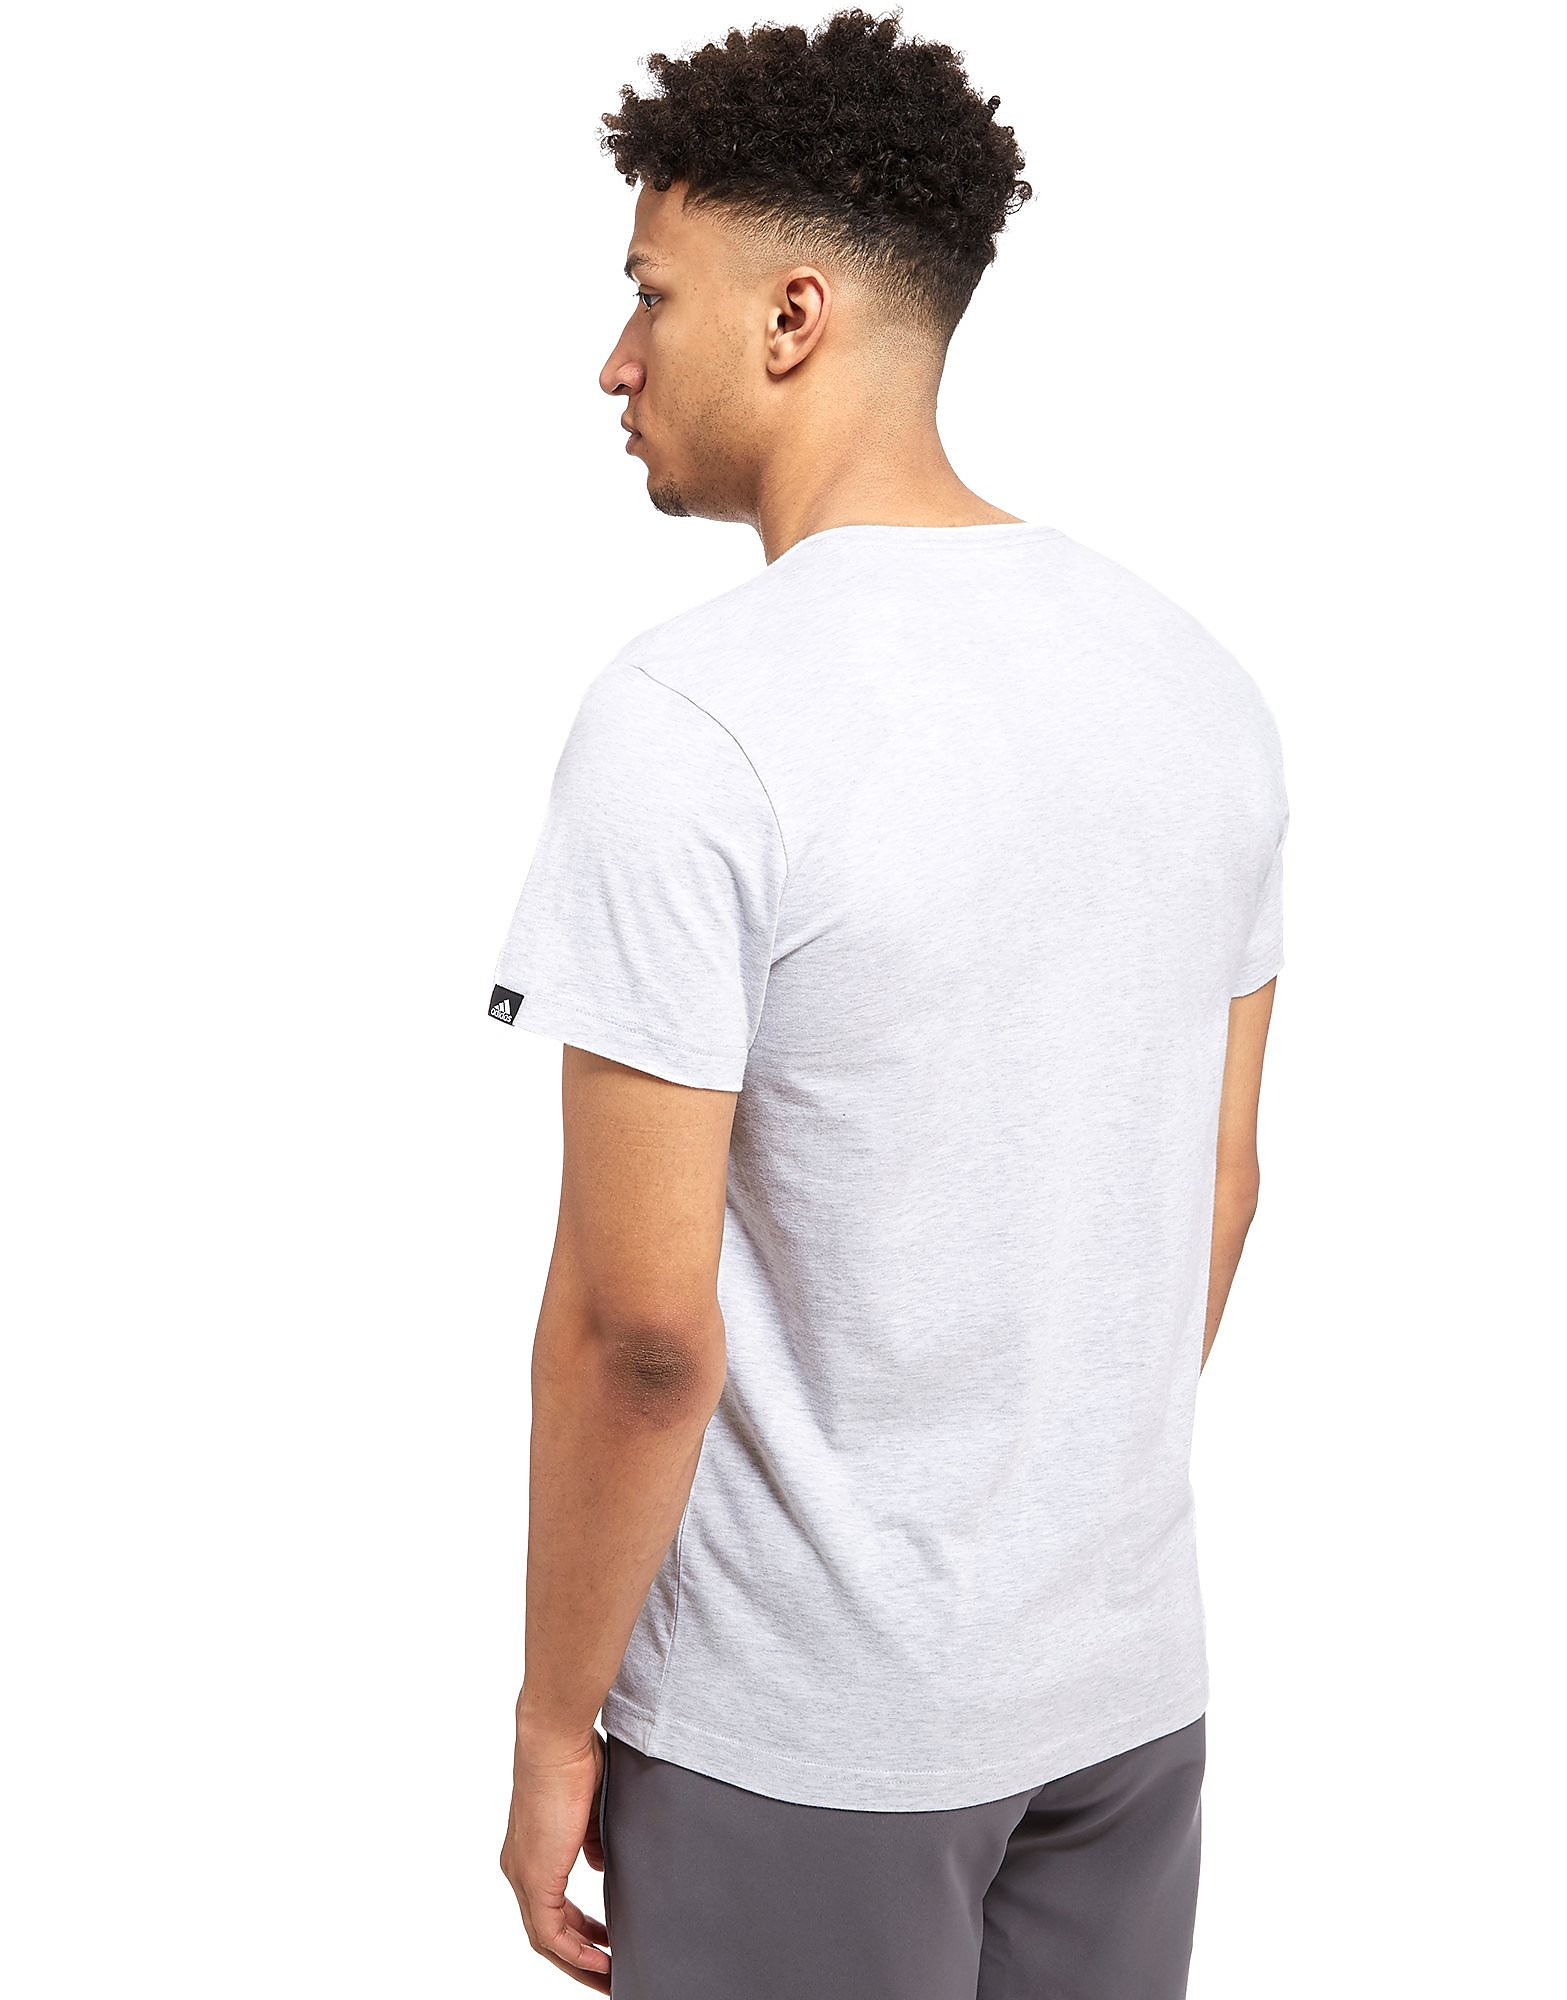 adidas 3-Stripes Perforated T-Shirt